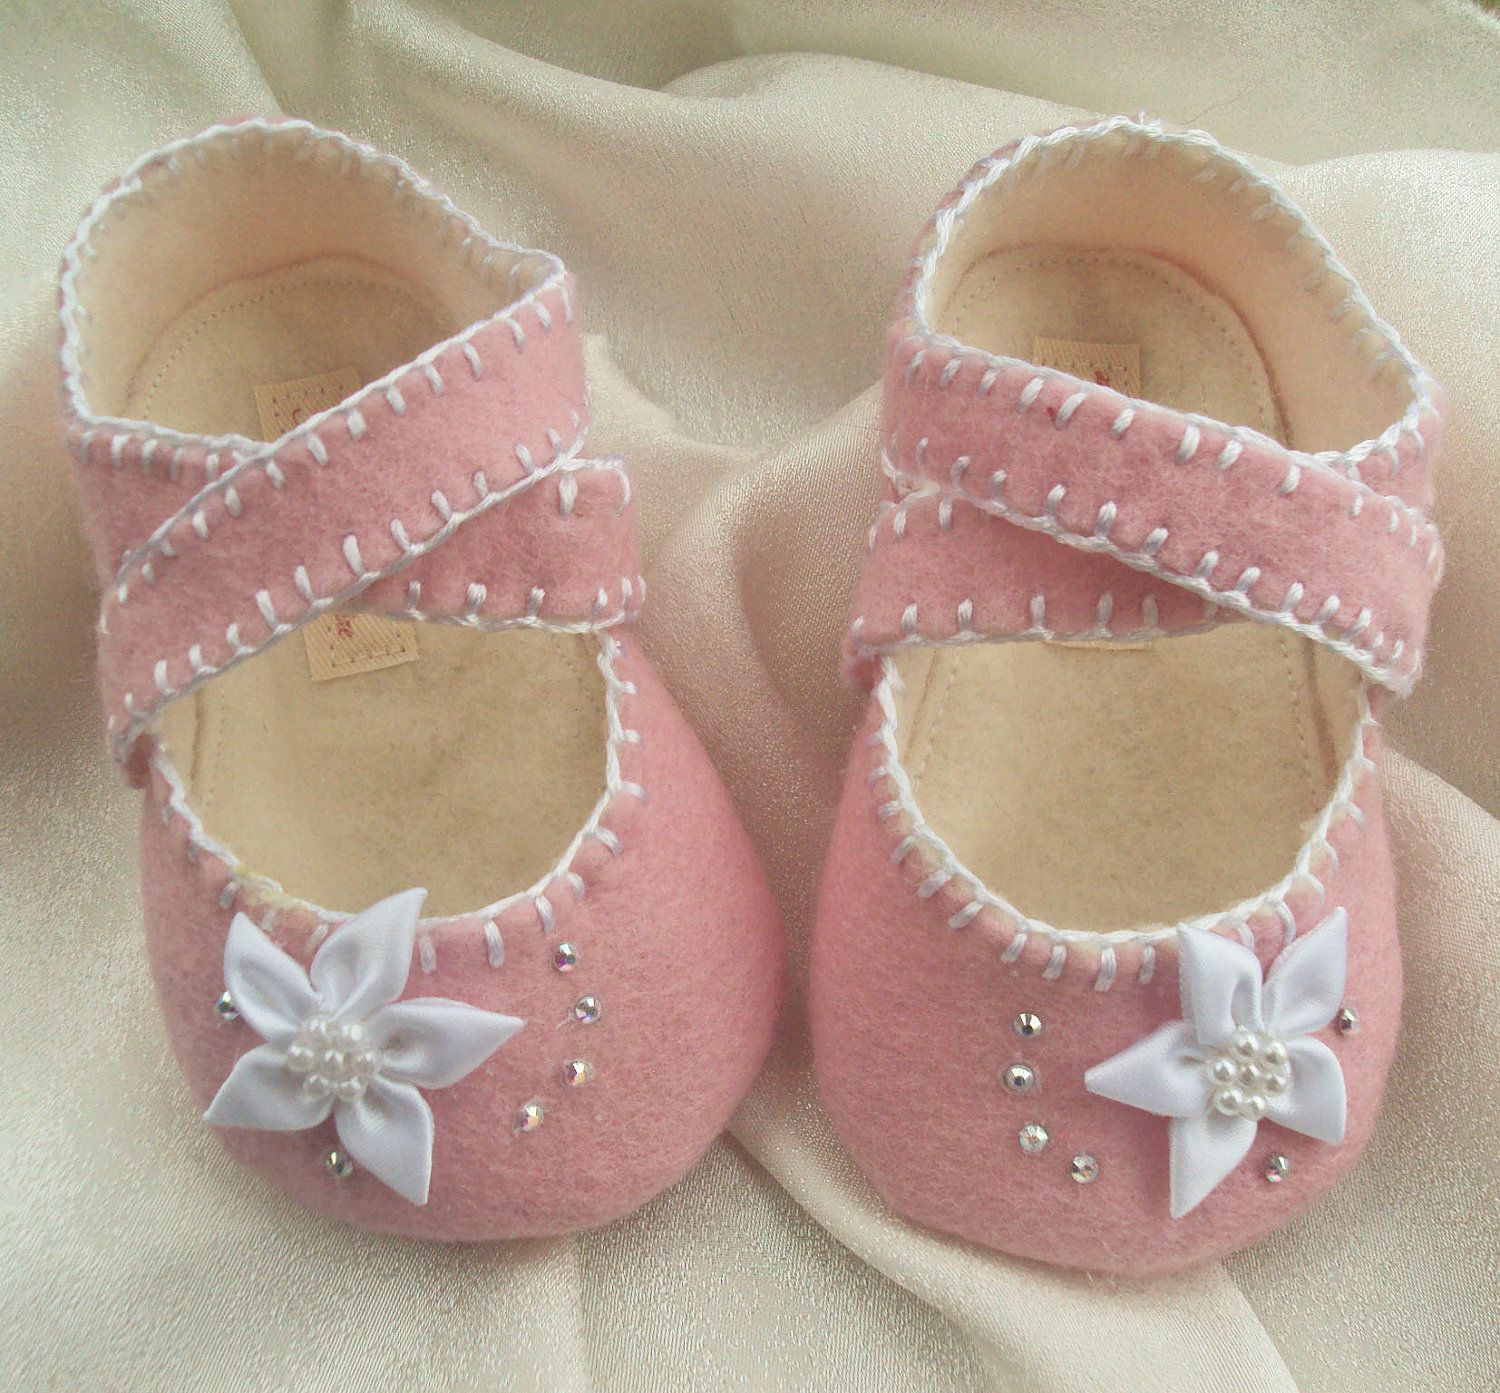 Baby Girl Shoes Pink Wool Felt Made to Order $33 00 via Etsy